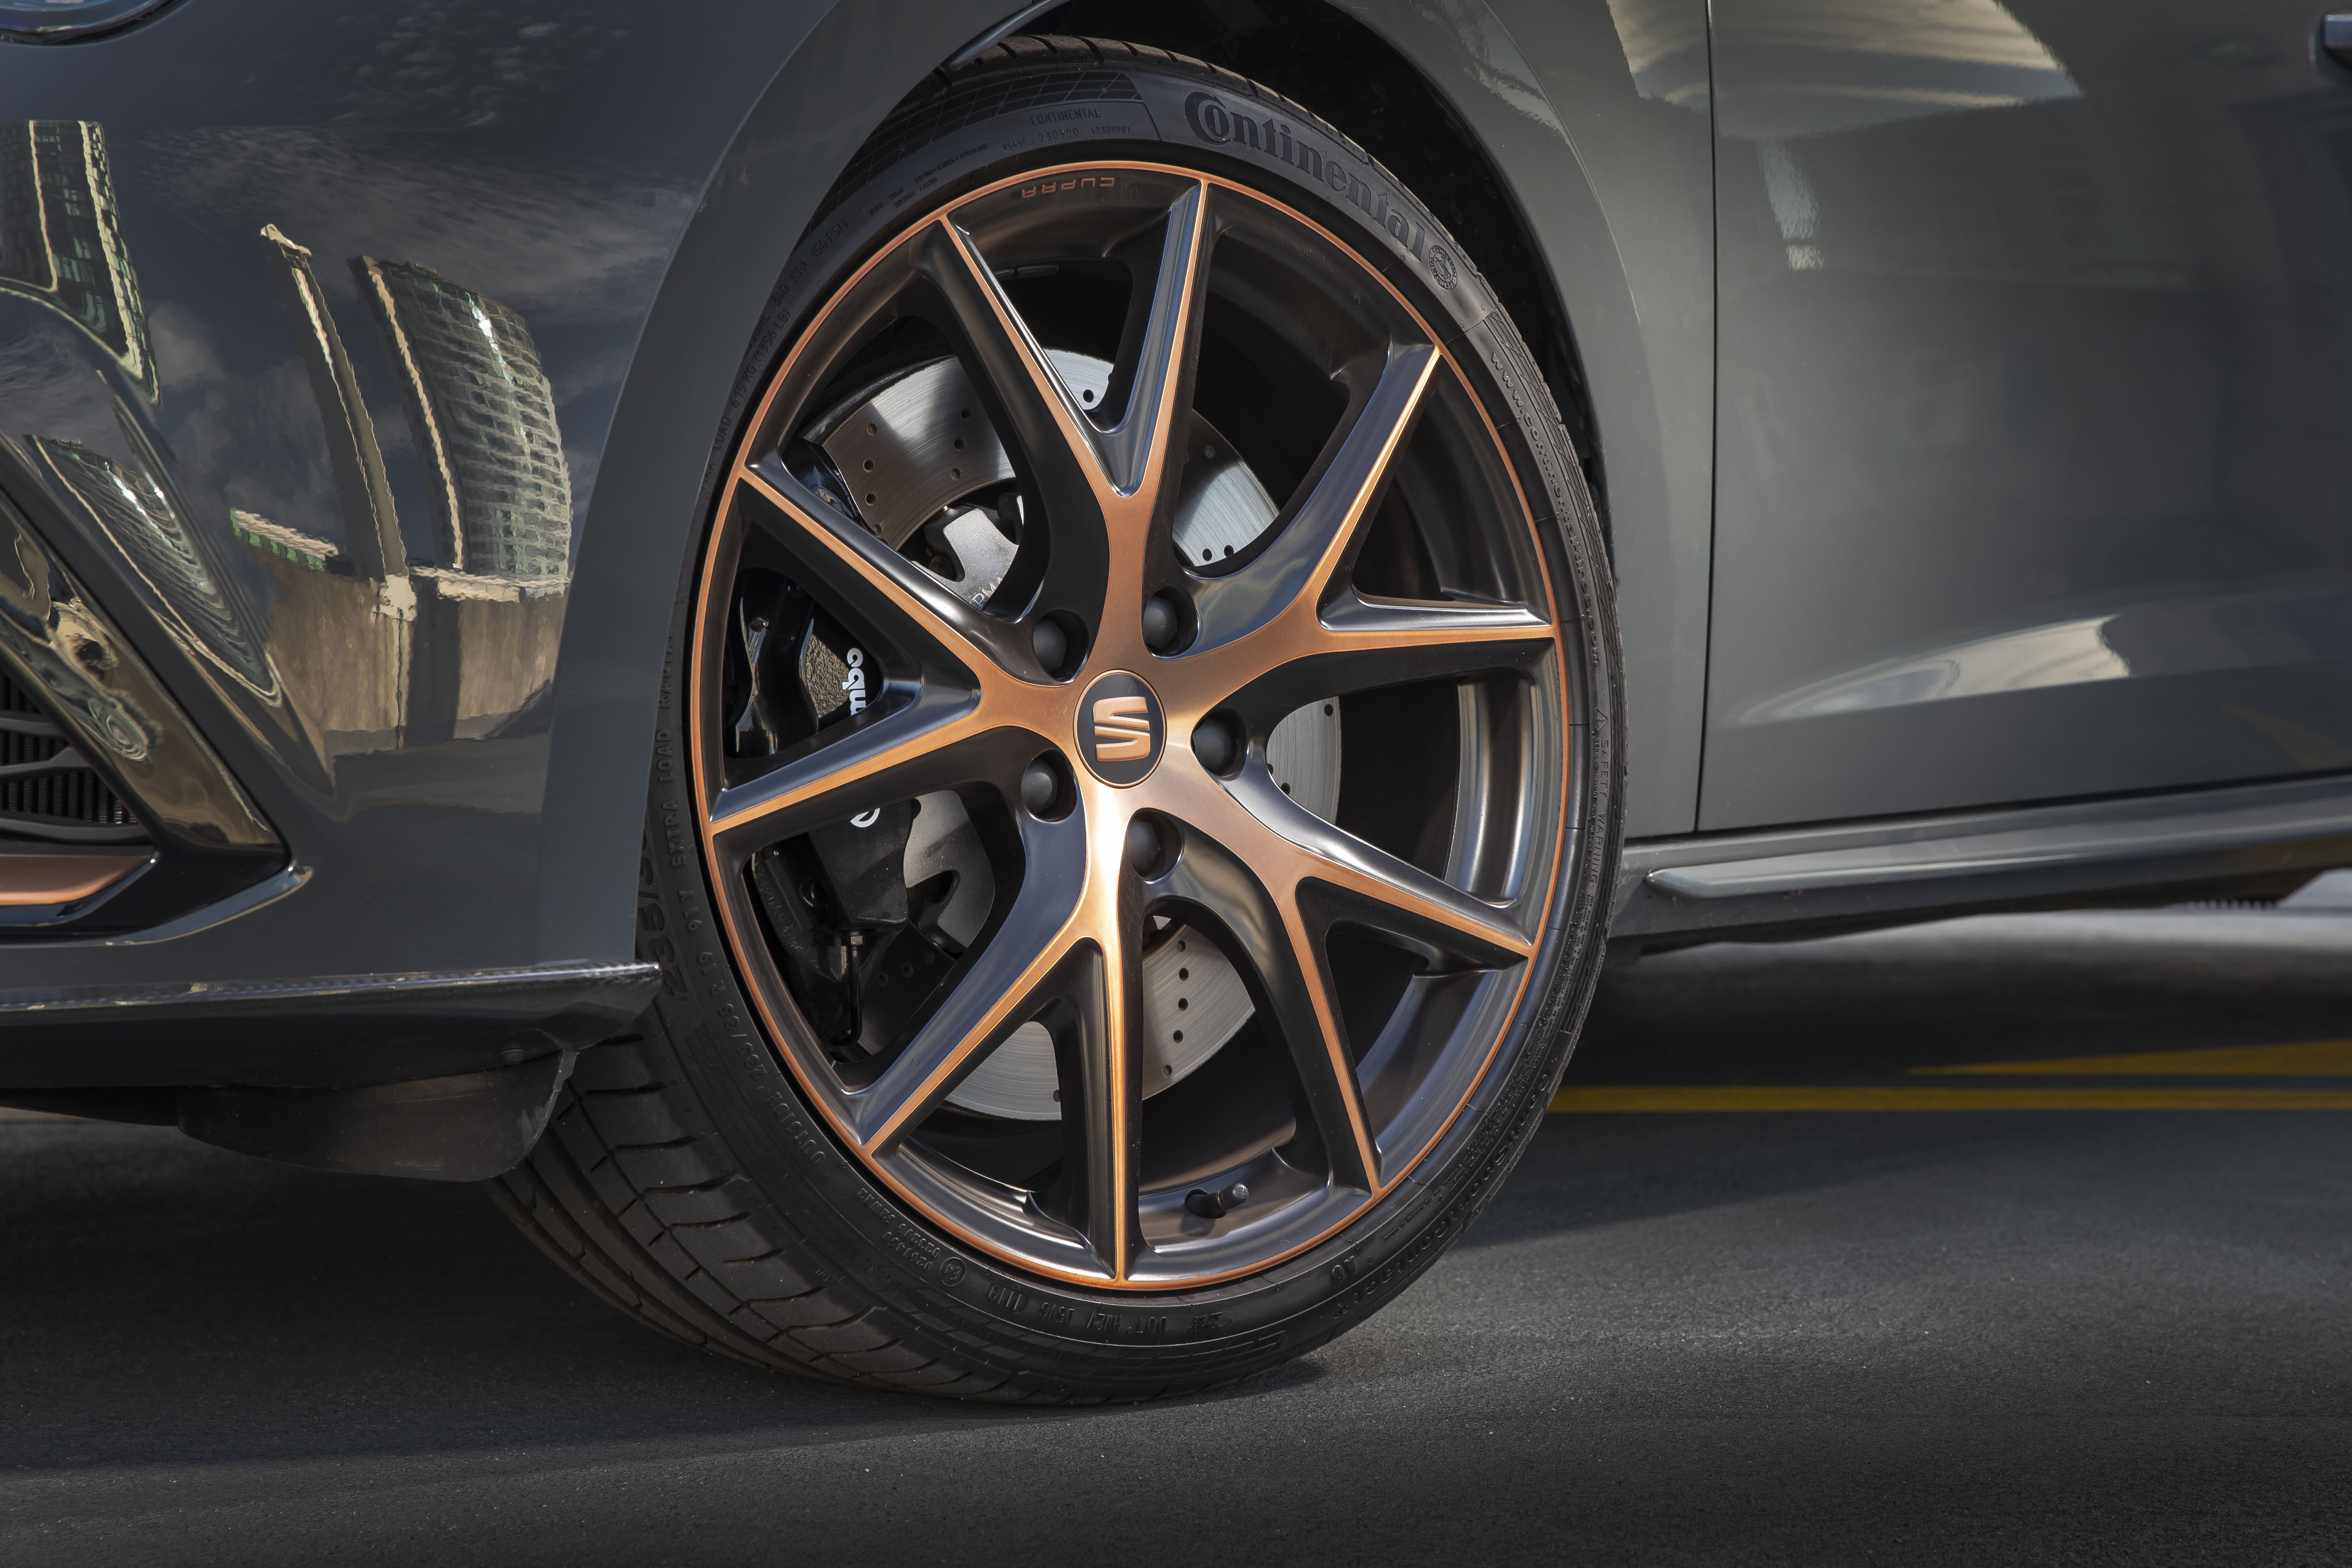 The chrome accents feature on the wheels too